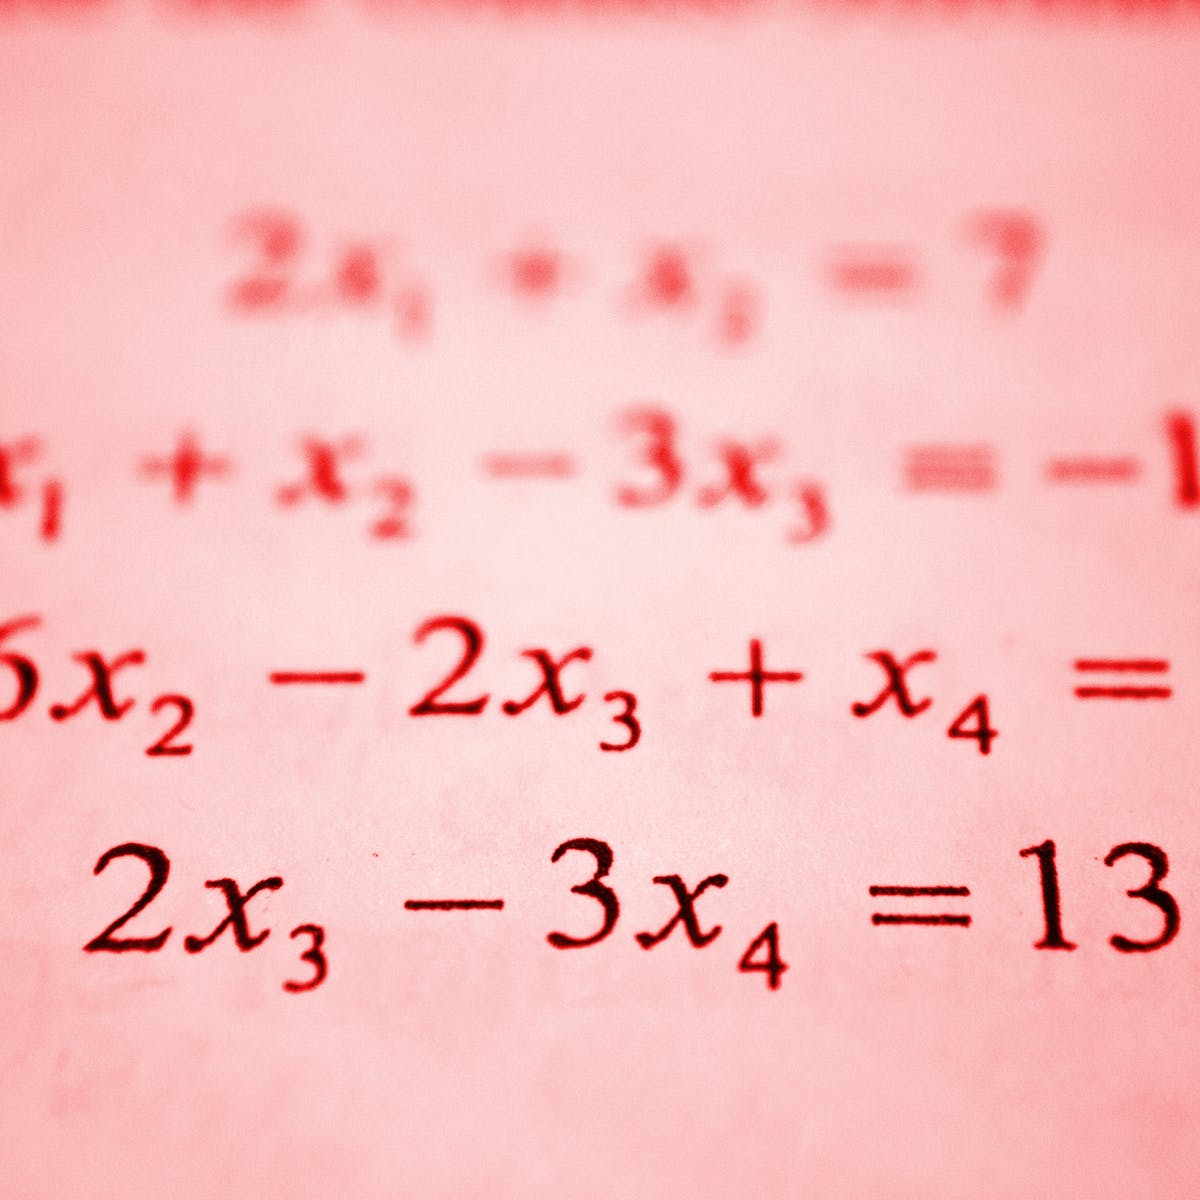 Study Shows One Personality Trait Is Most Important for Math Skills